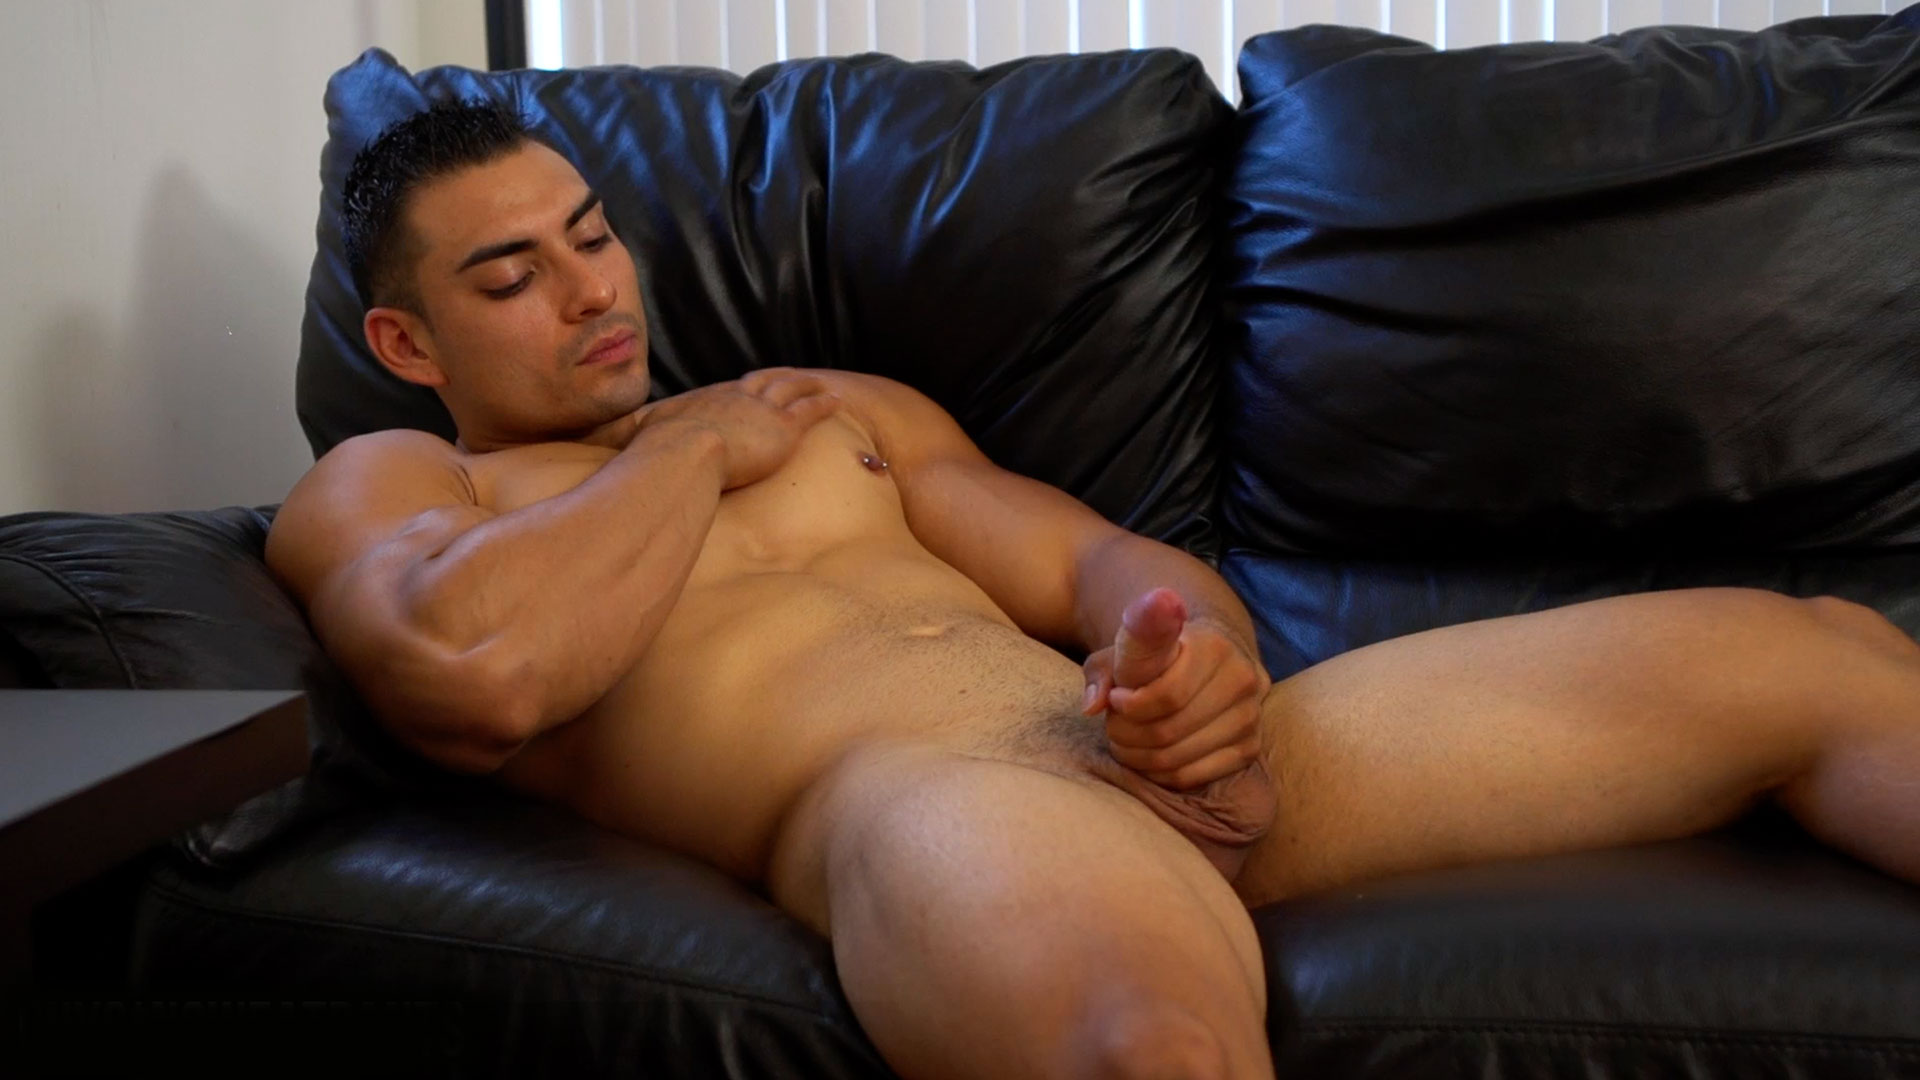 Gay twinks latino blowing jobs preston